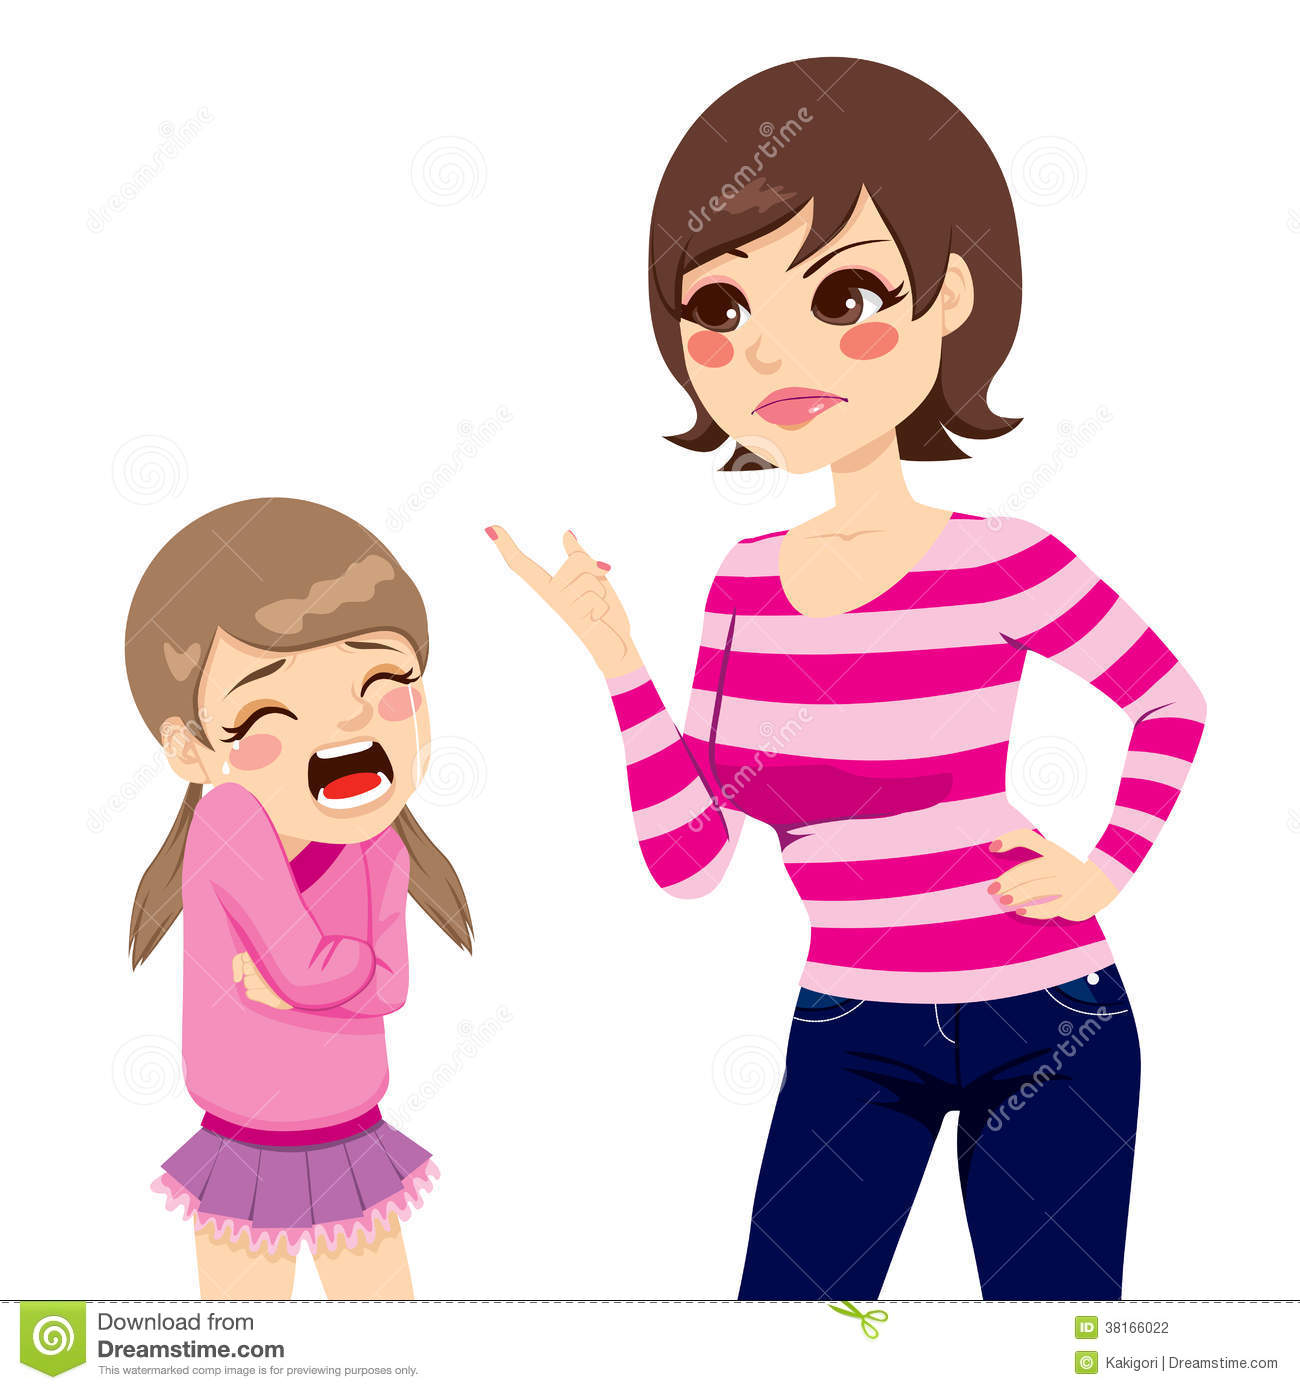 Illustration of upset young mother scolding little crying girl.